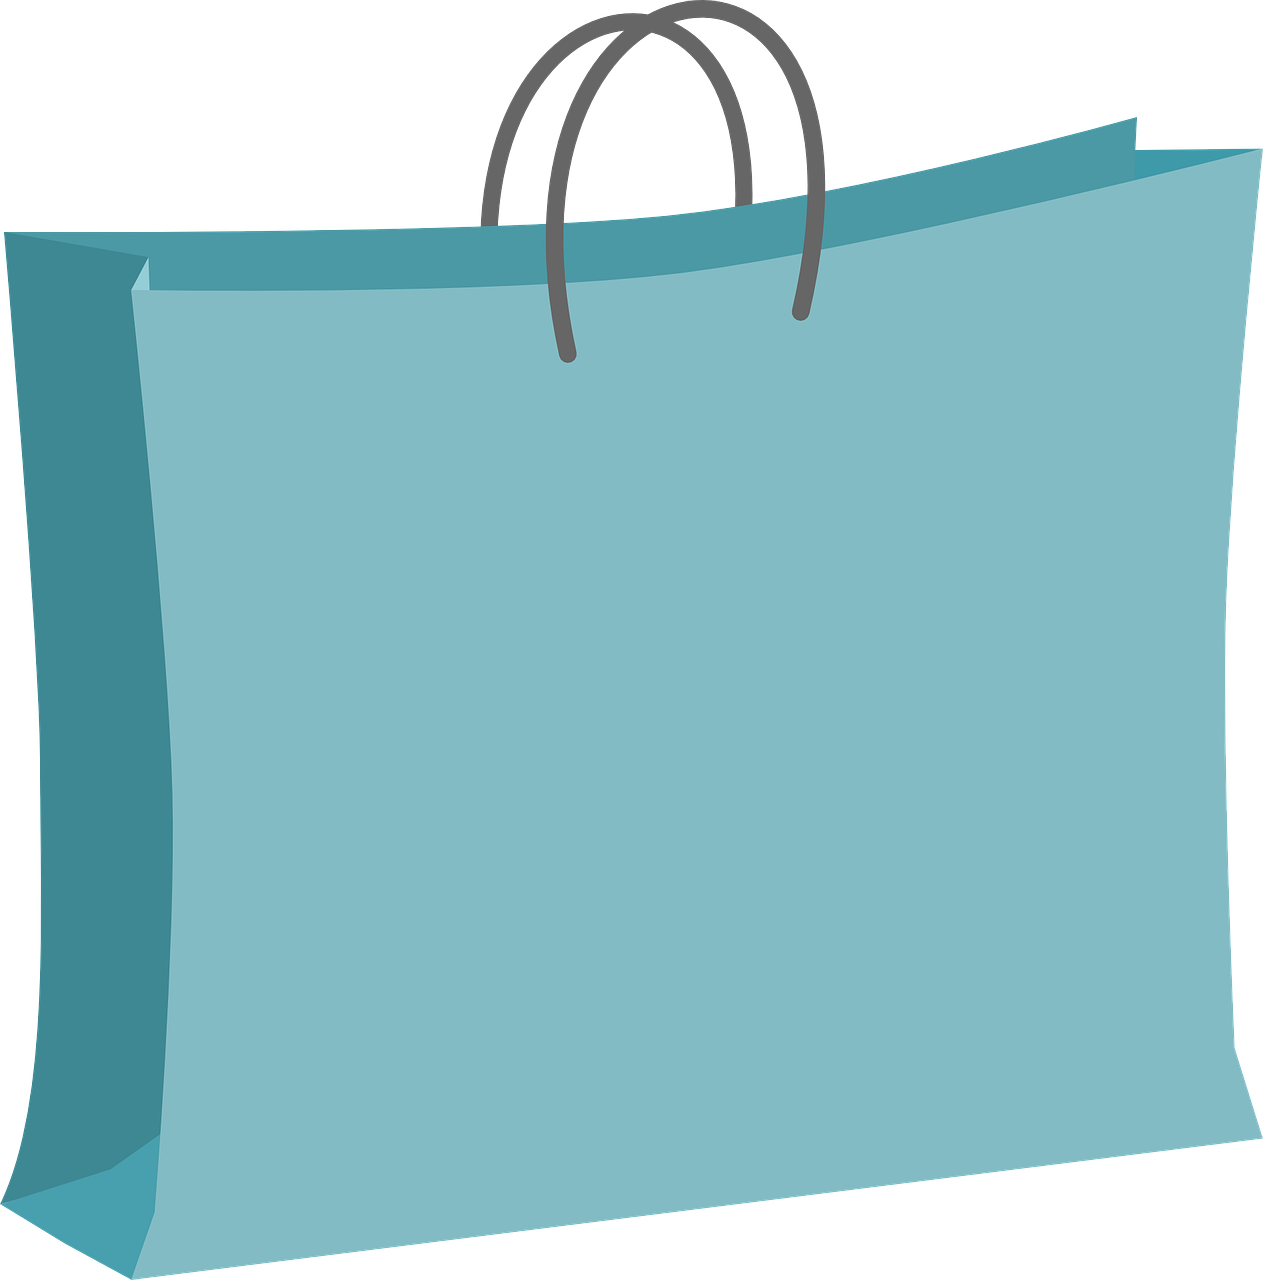 Are You Looking For A Clip Art Of A Shop-Are you looking for a clip art of a shopping bag for use on your shopping projects? Search no more as you can use this green shopping bag clip art for ...-0